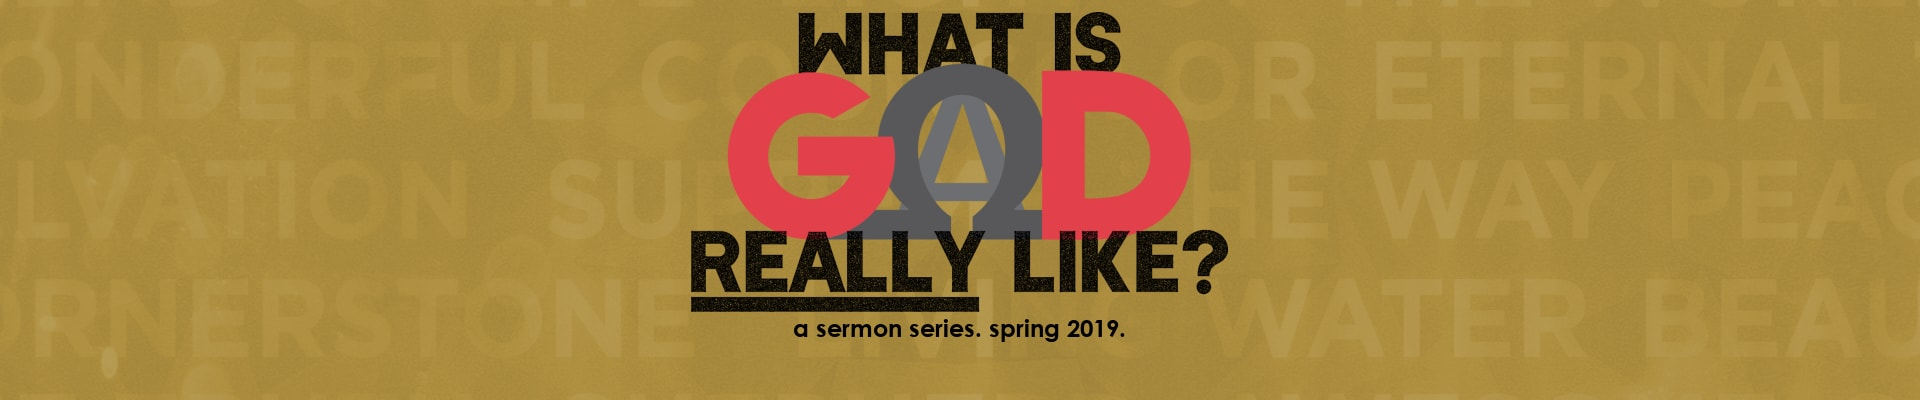 What Is God Really Like | A Sermon Series | Spring 2019